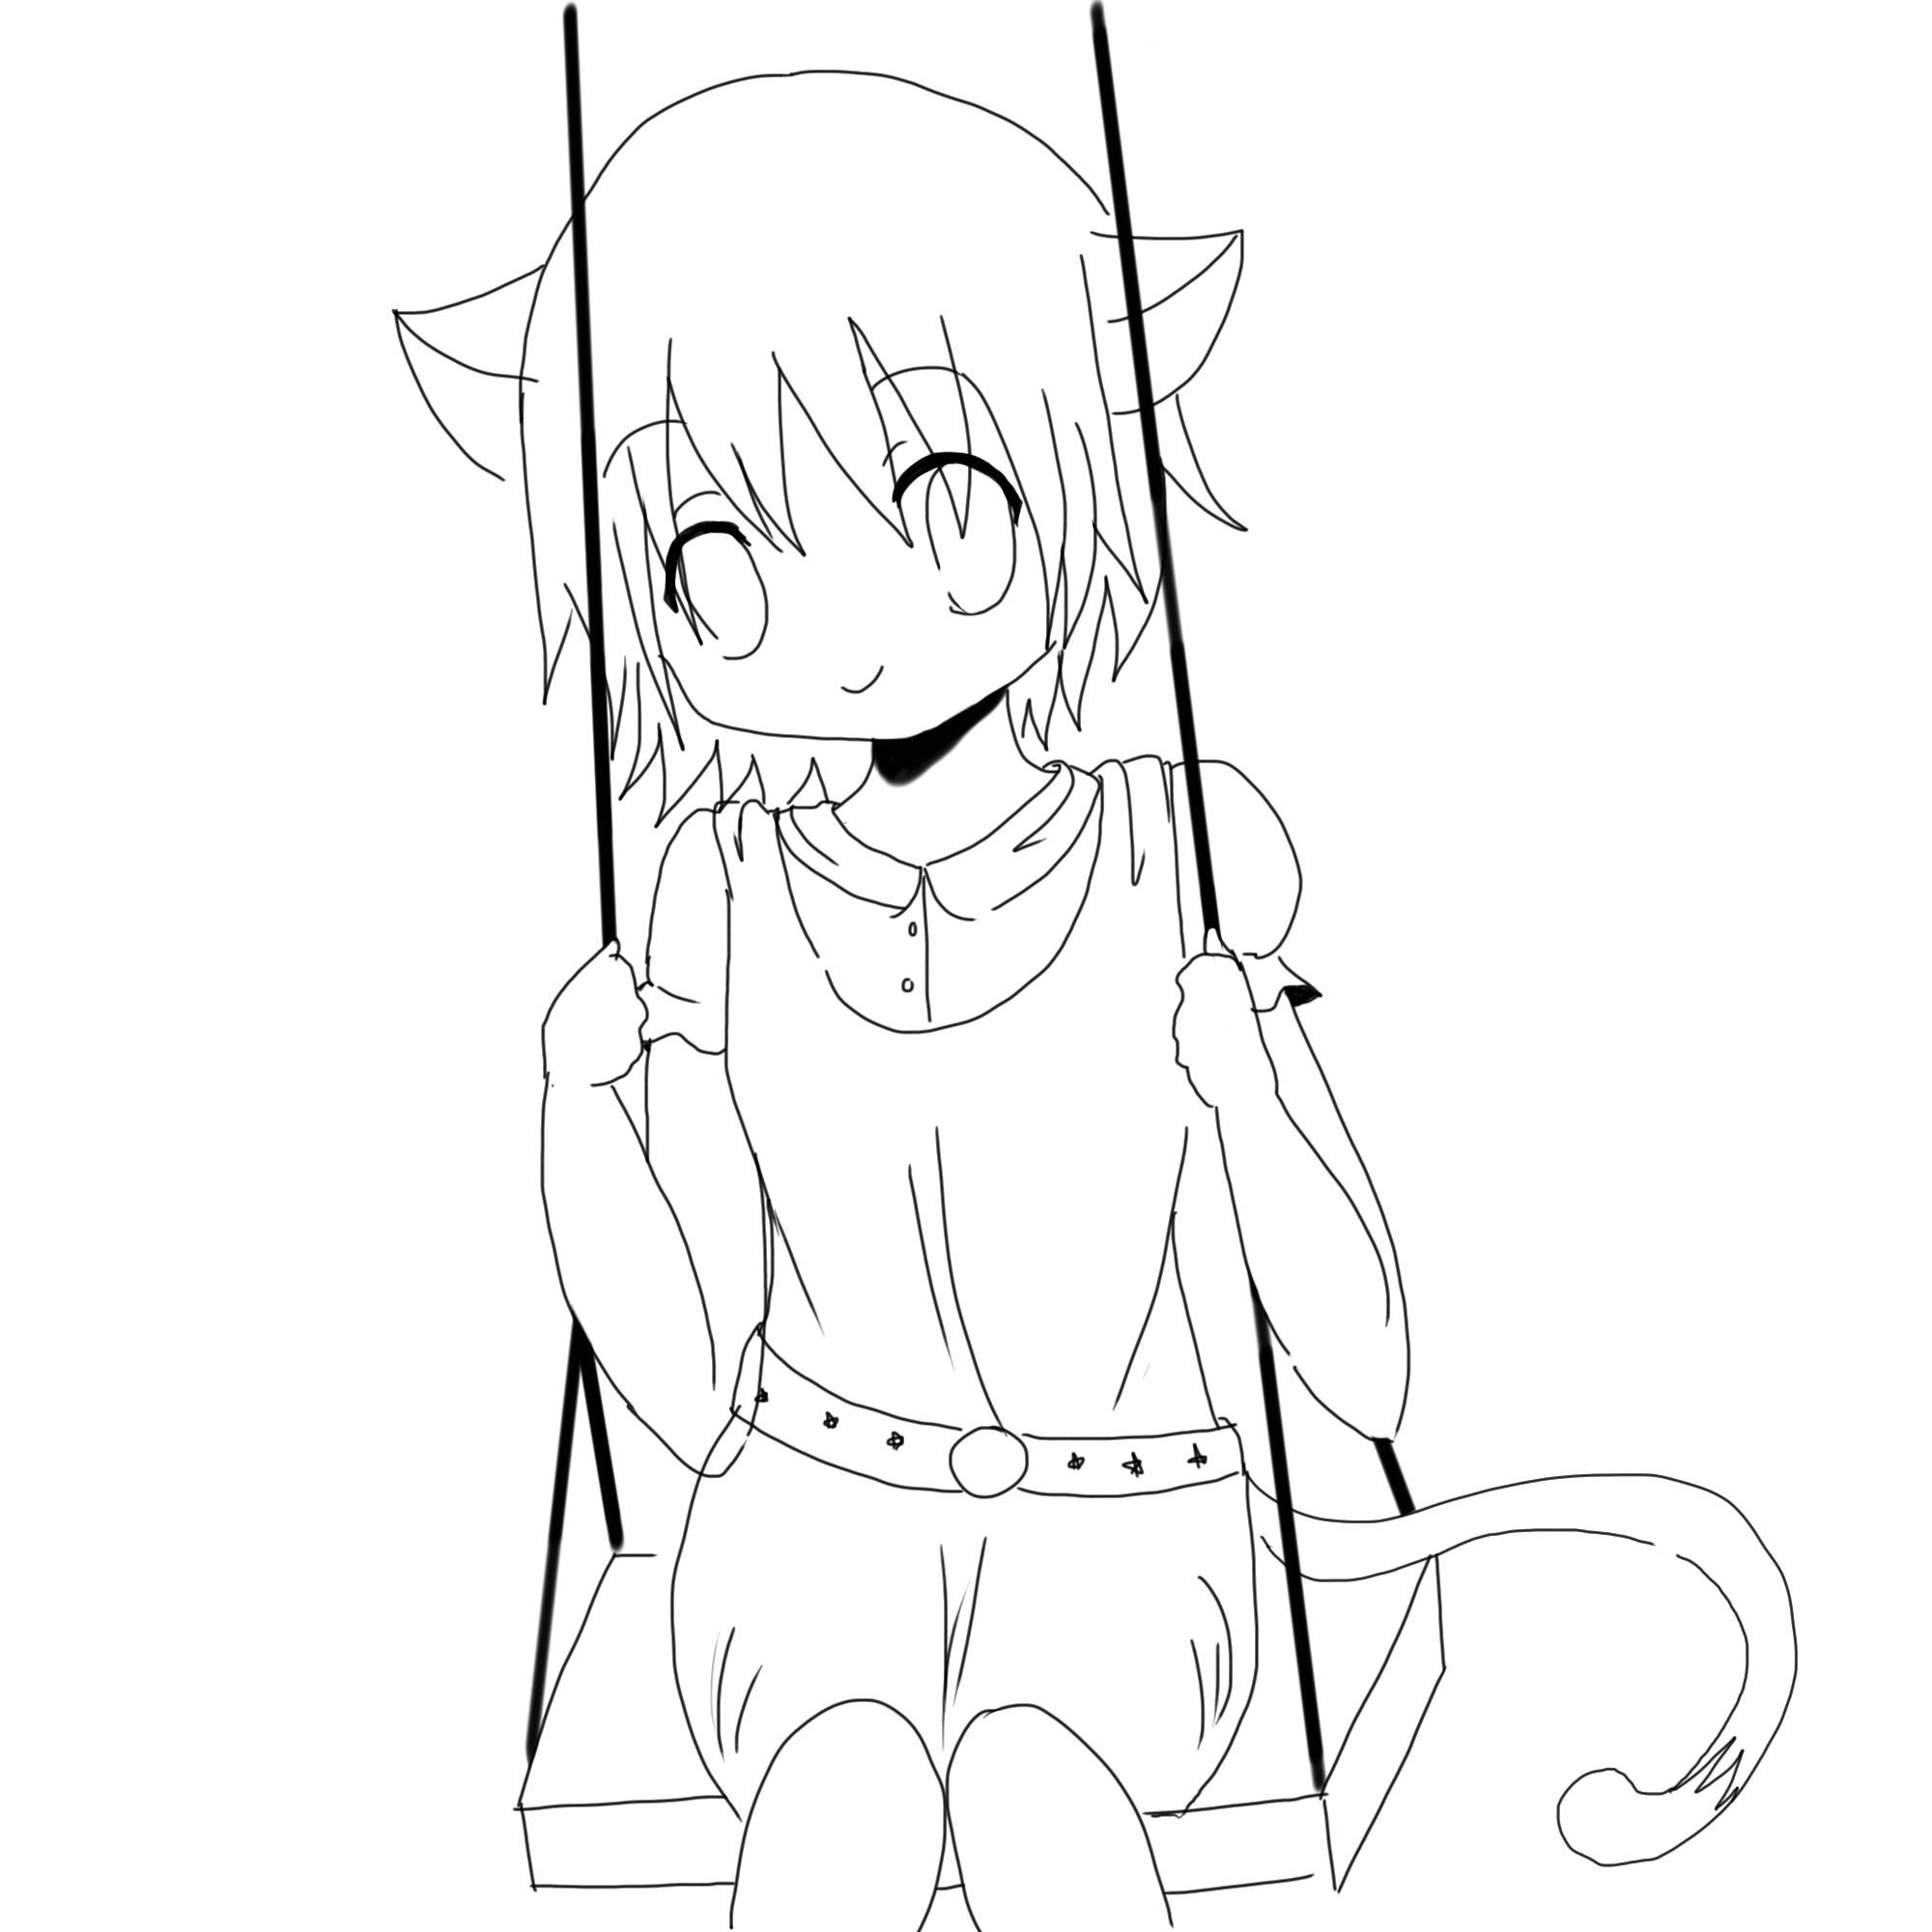 2000x2000 Anime Neko Coloring Pages Coloring Sheets